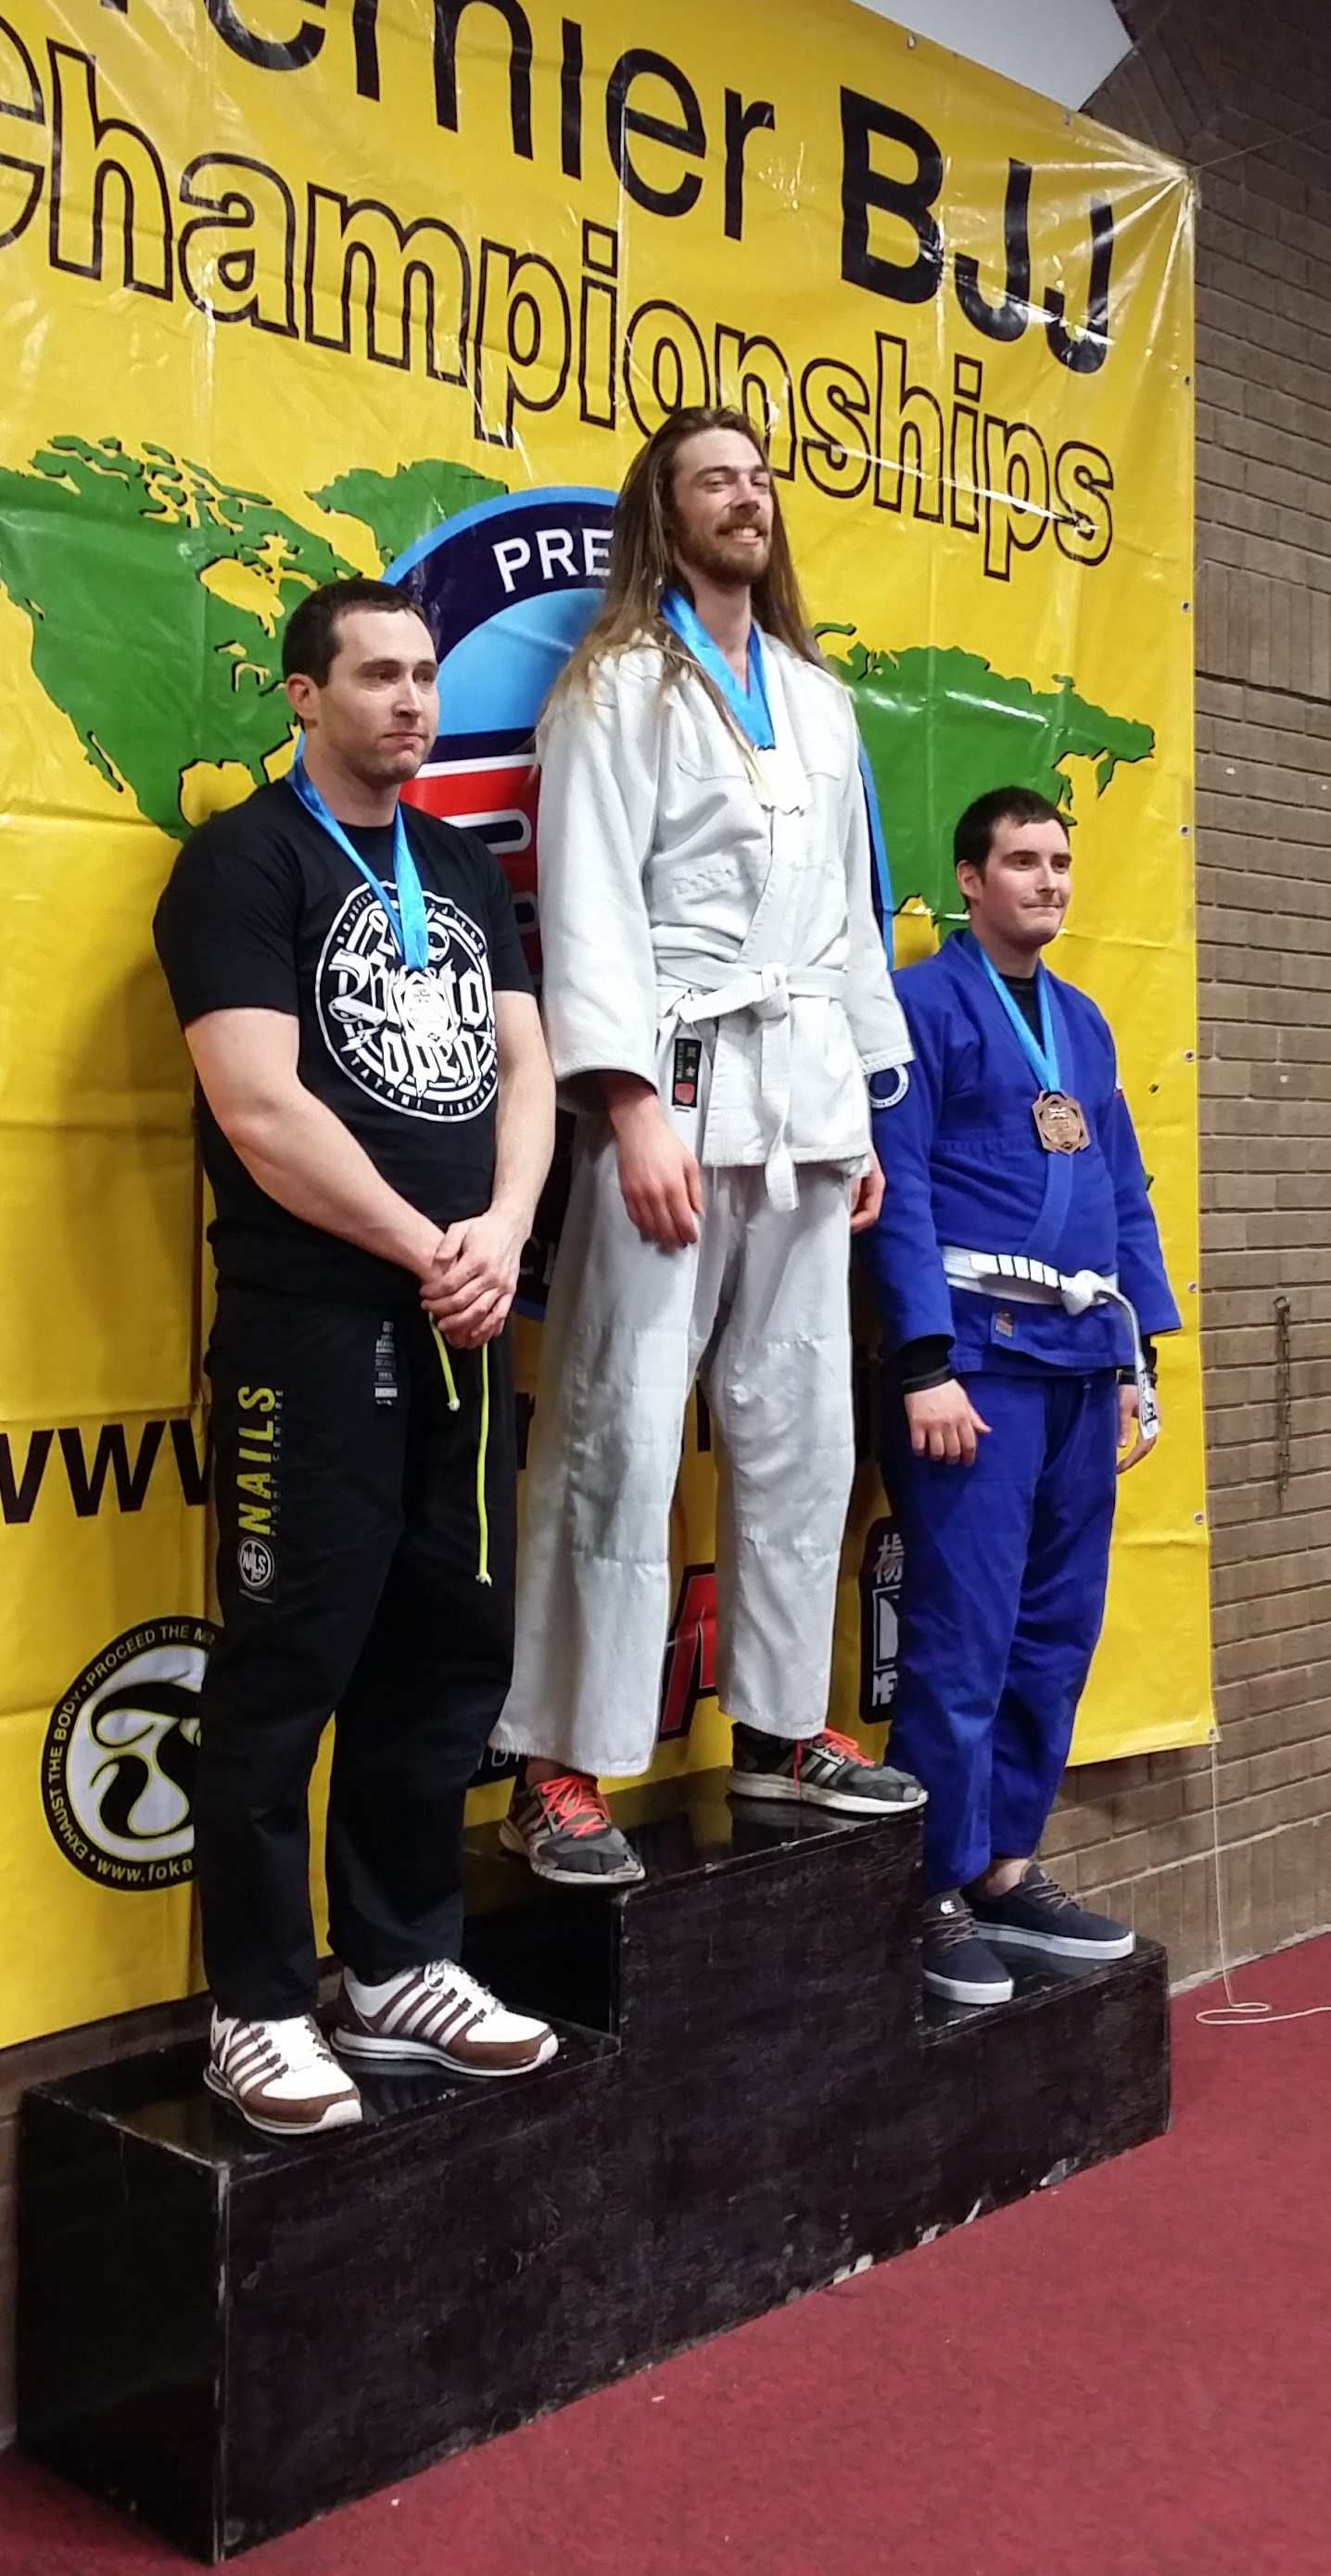 Artemis BJJ gold medal for Simon at Bristol Open Feb 2016